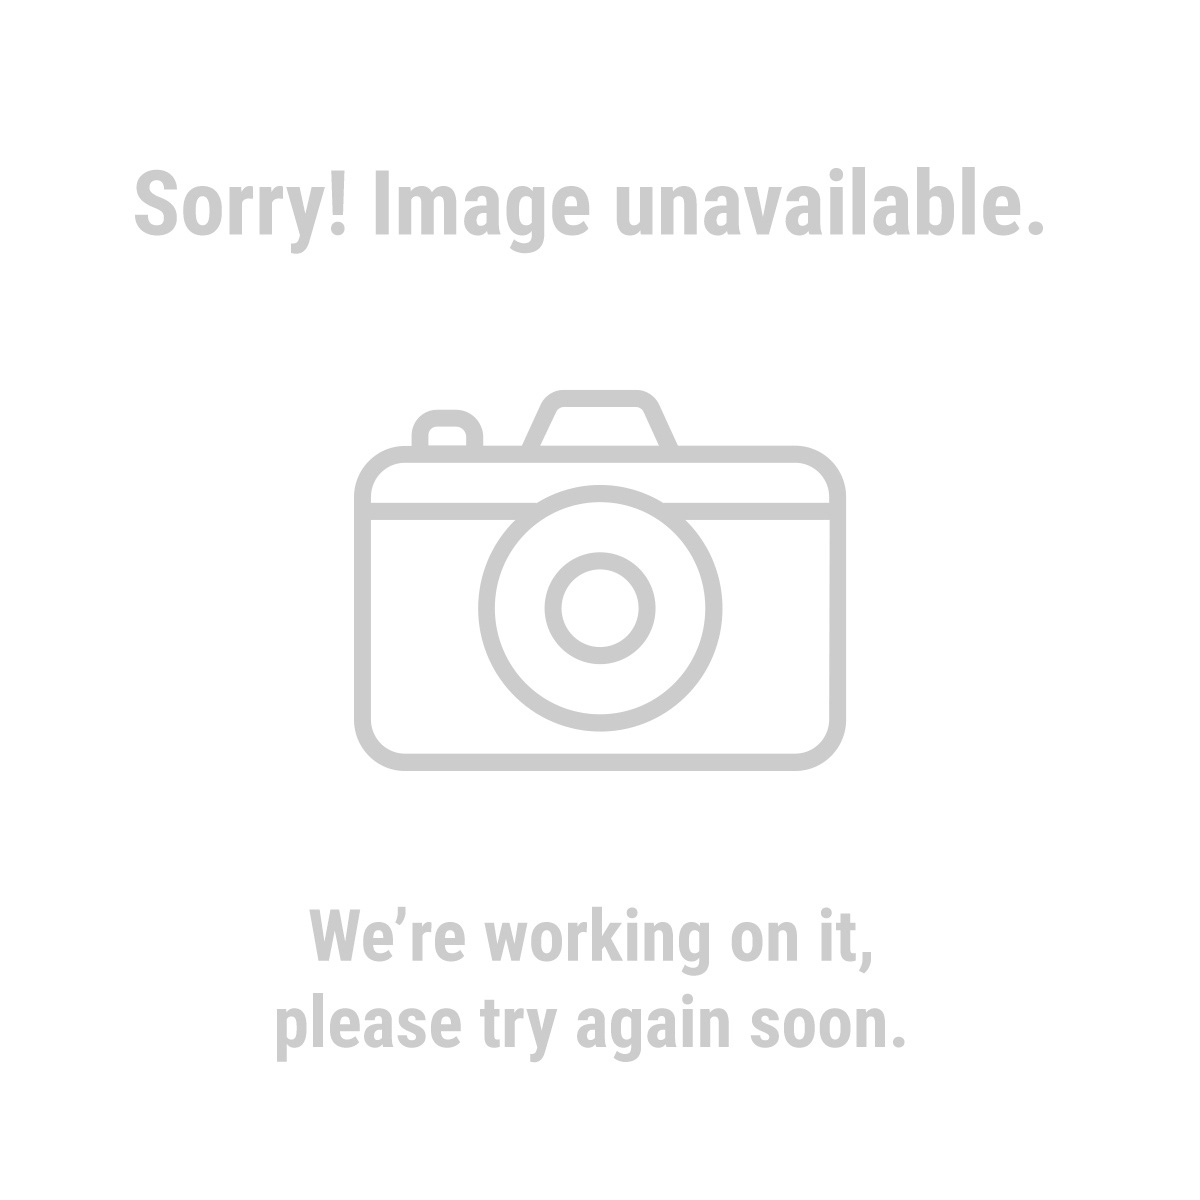 IRON ARMOR 60783 Truck Bed Coating - 16-1/2 Oz.